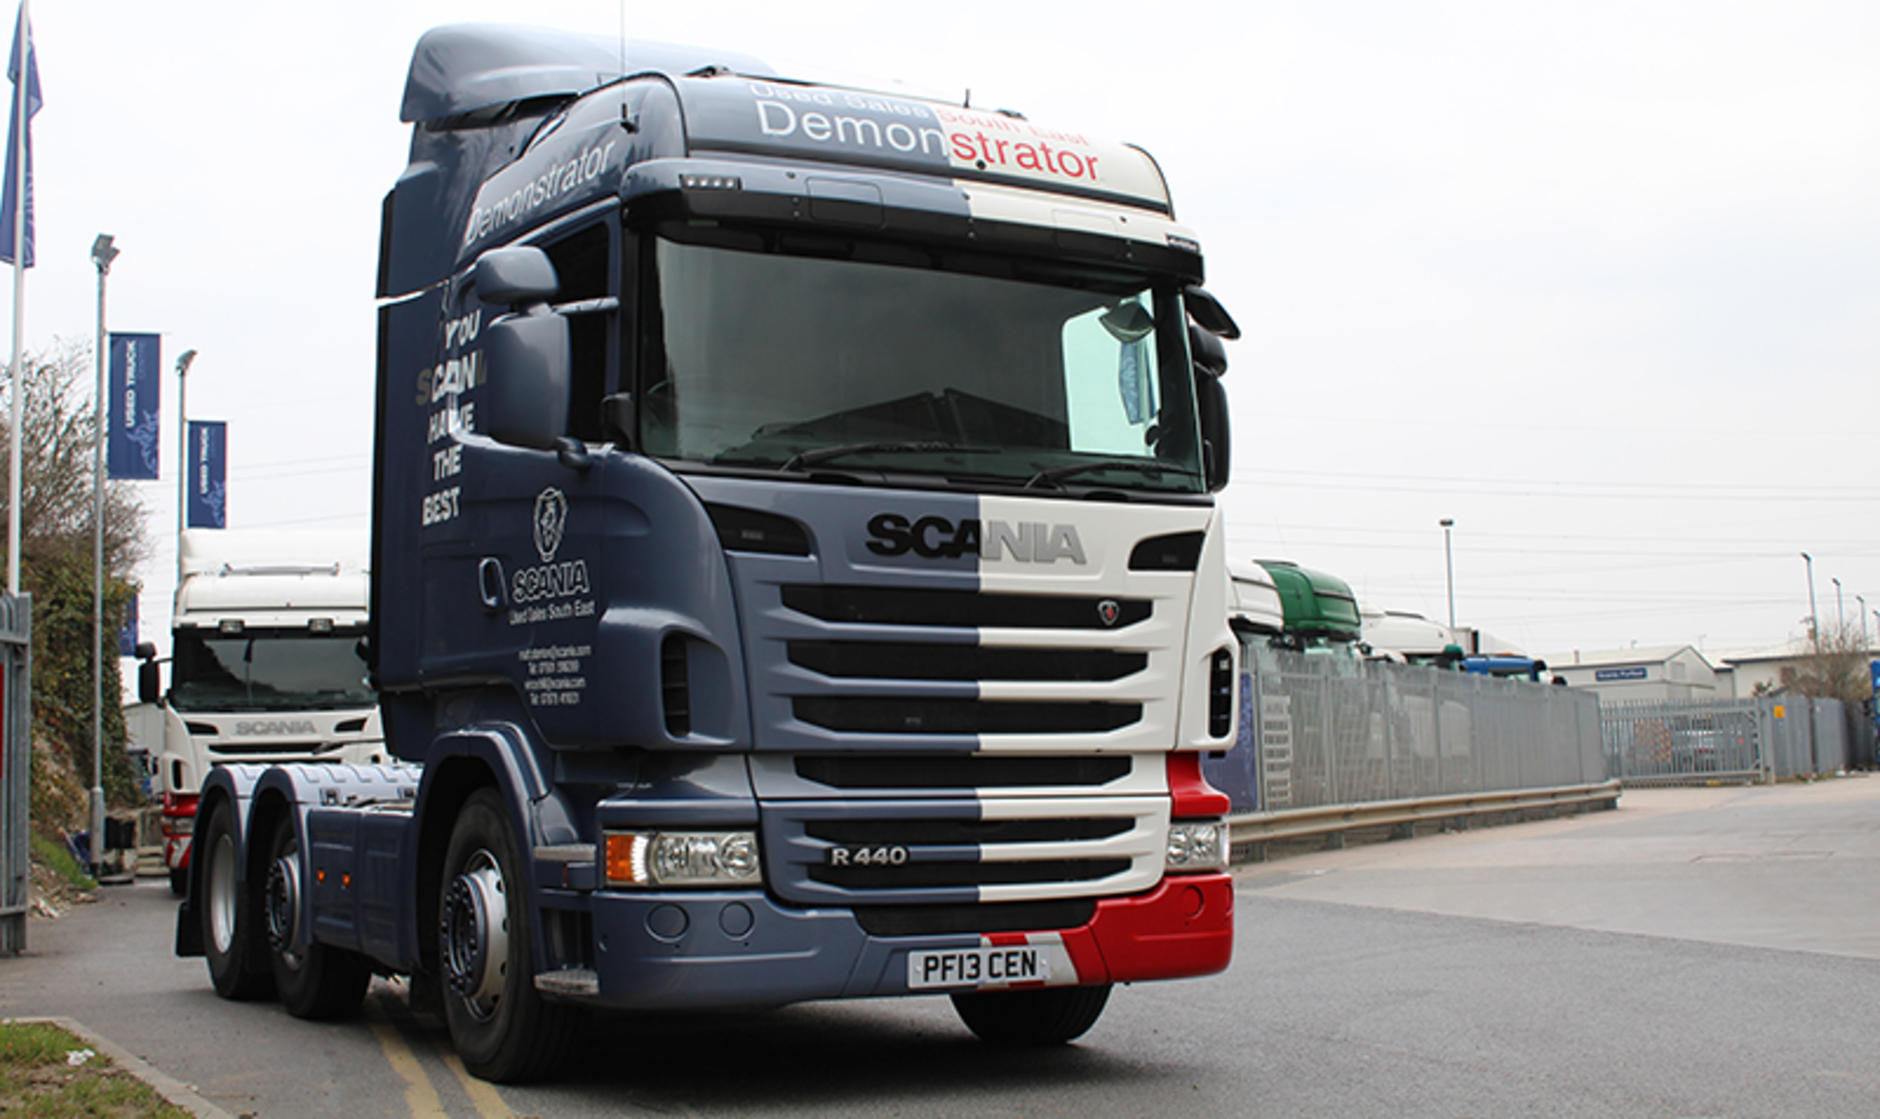 10 new Volvo FH 460 4x2 Globetrotters for Bradley Transport